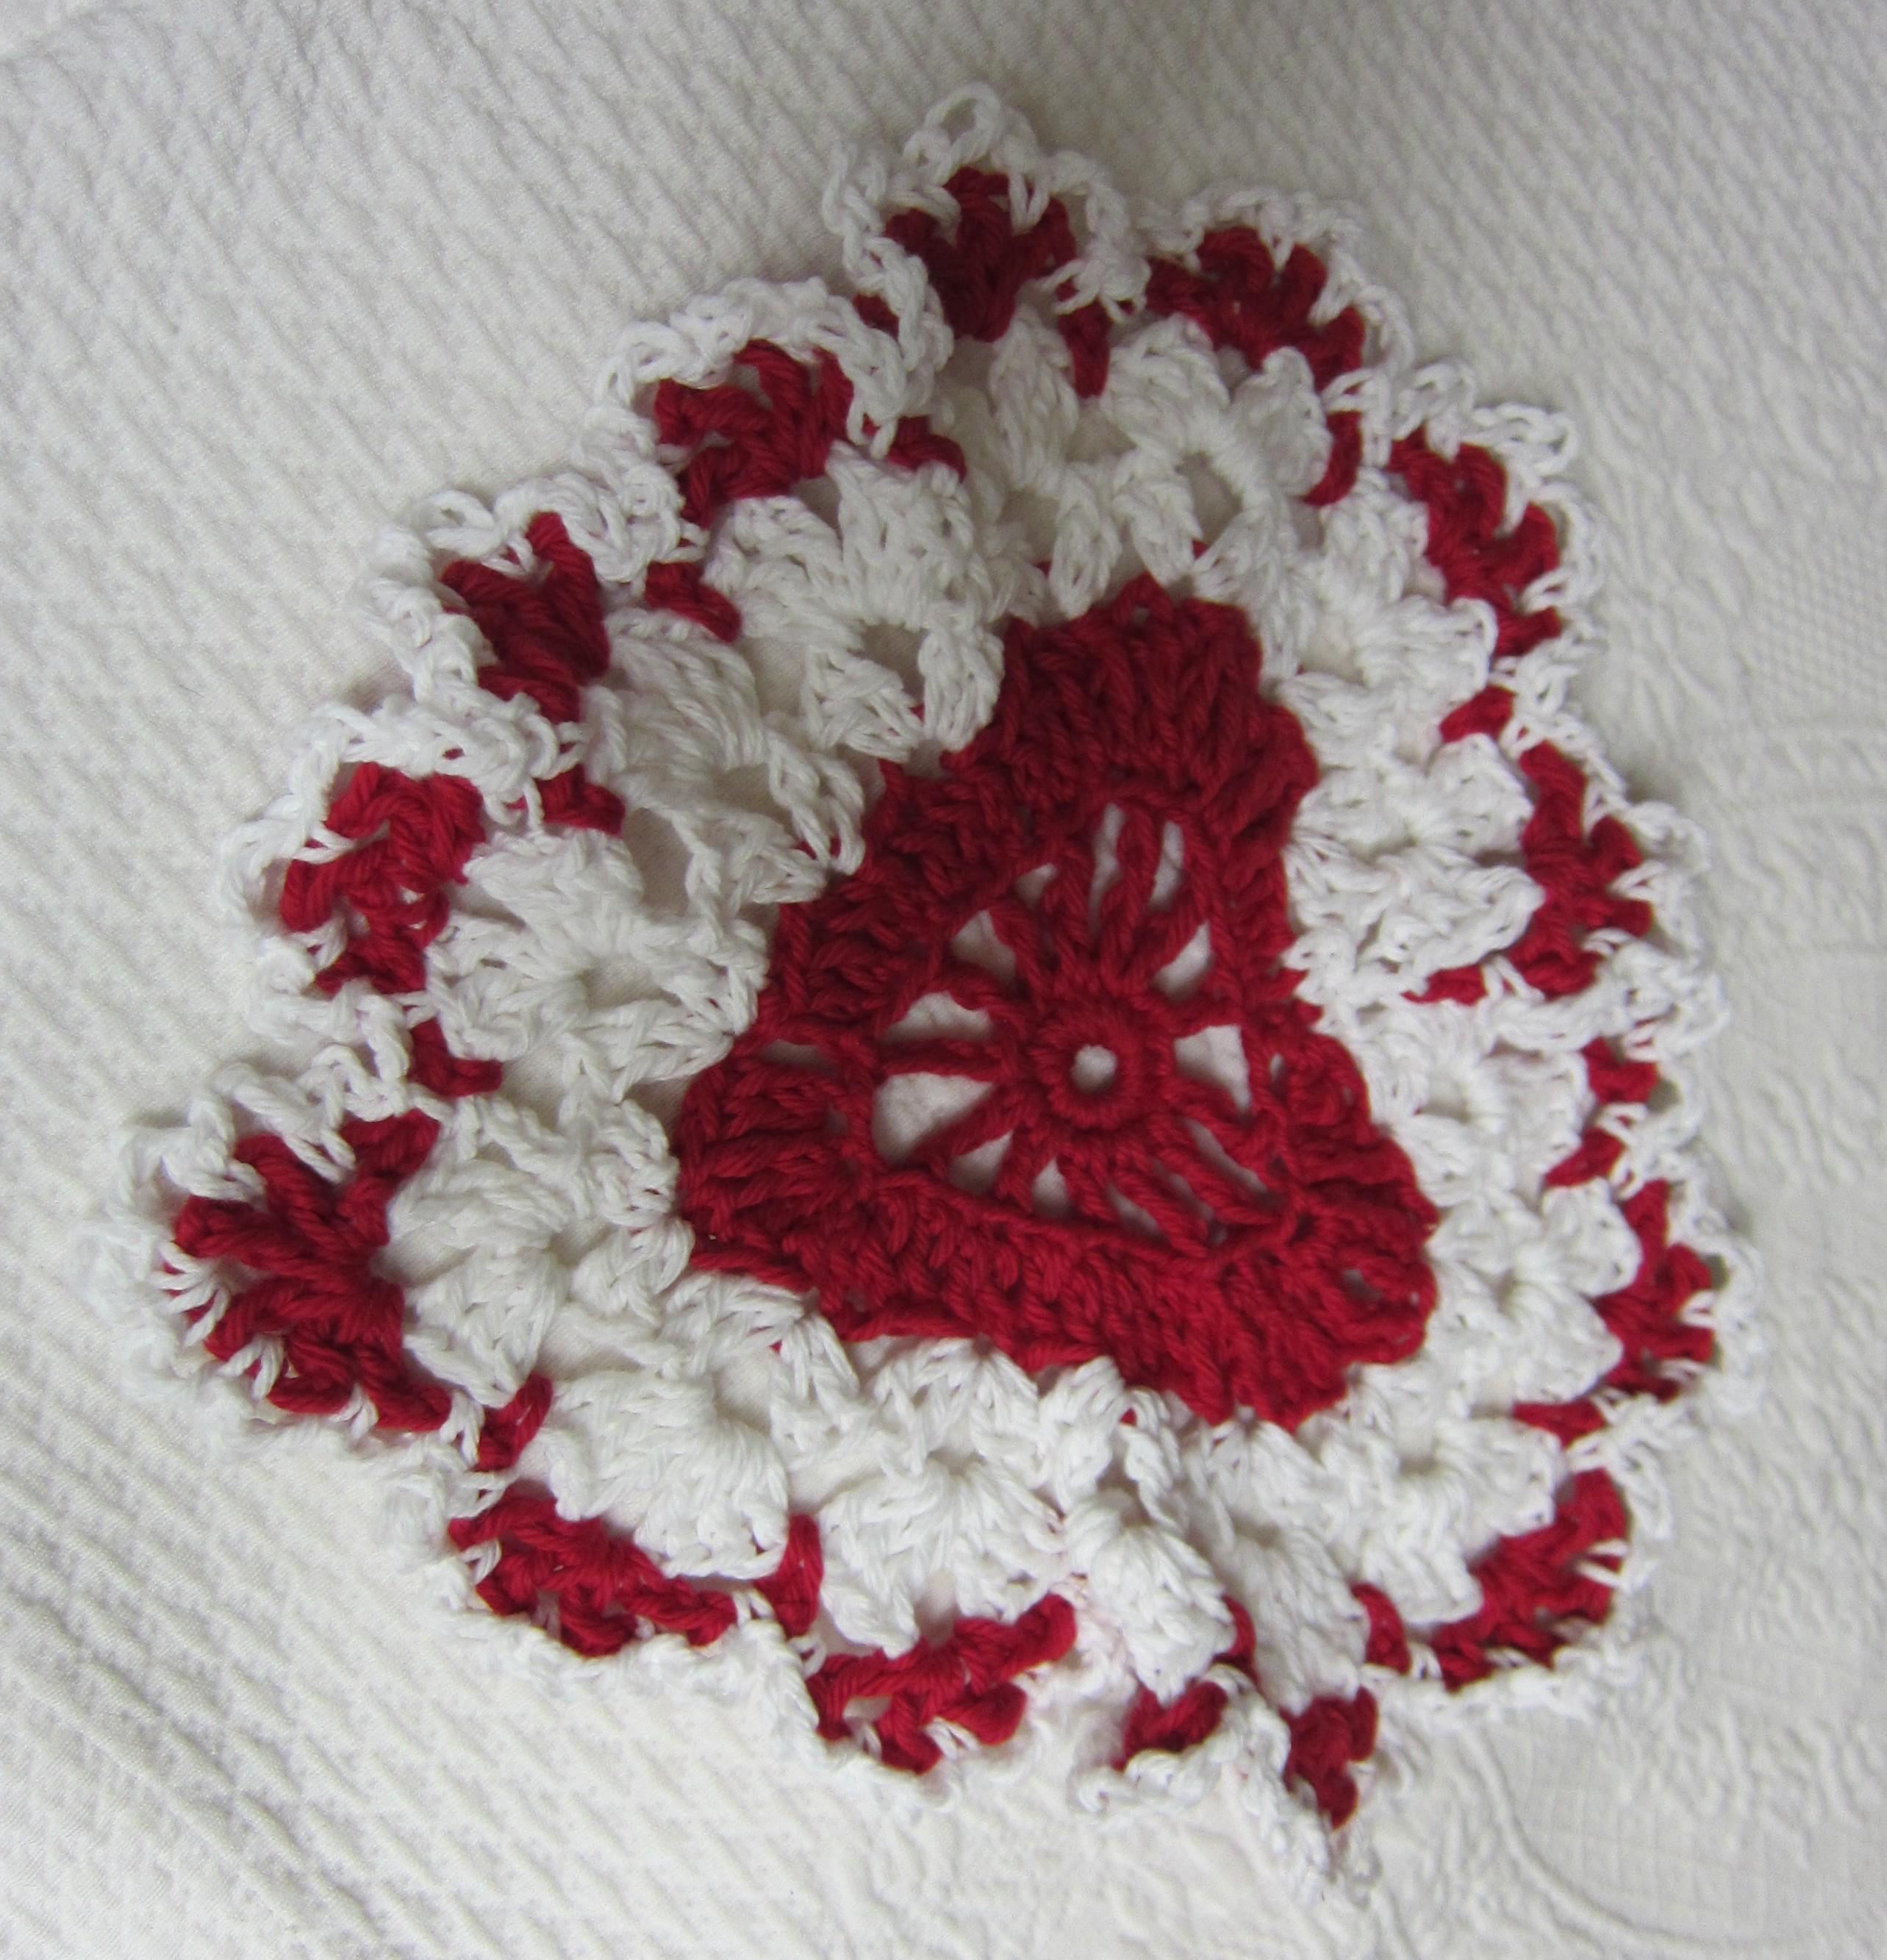 Crochet Dishcloth,Washcloth,Cotton Dishcloths,Heart Shaped ...